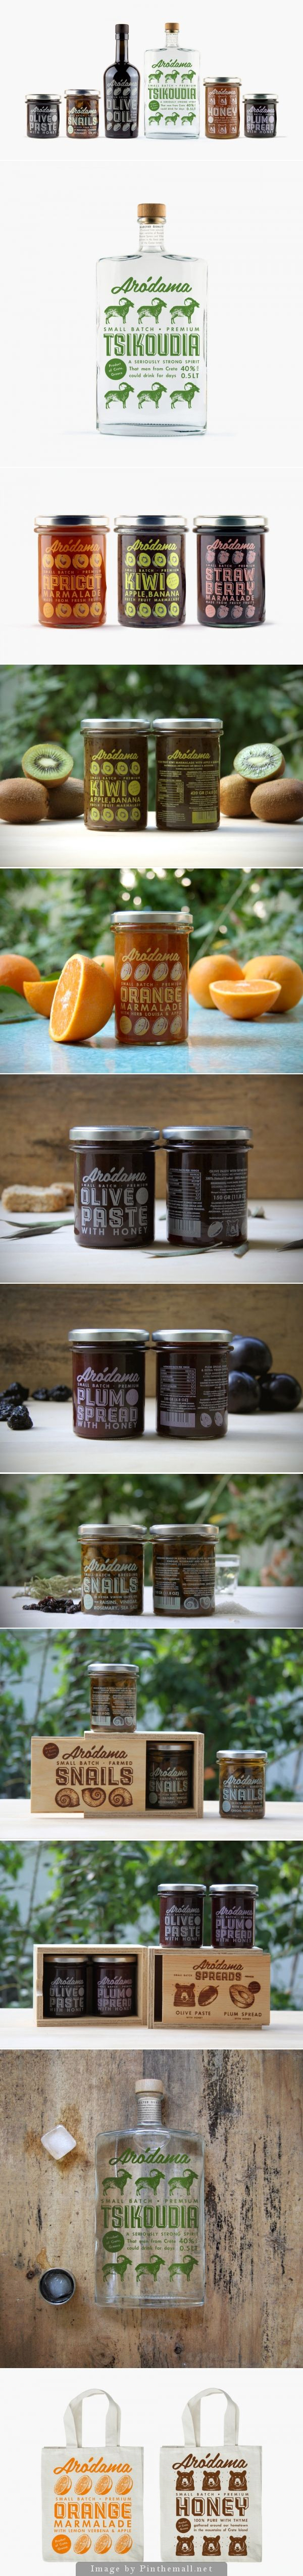 Arodama love these repetitous #packaging designs PD